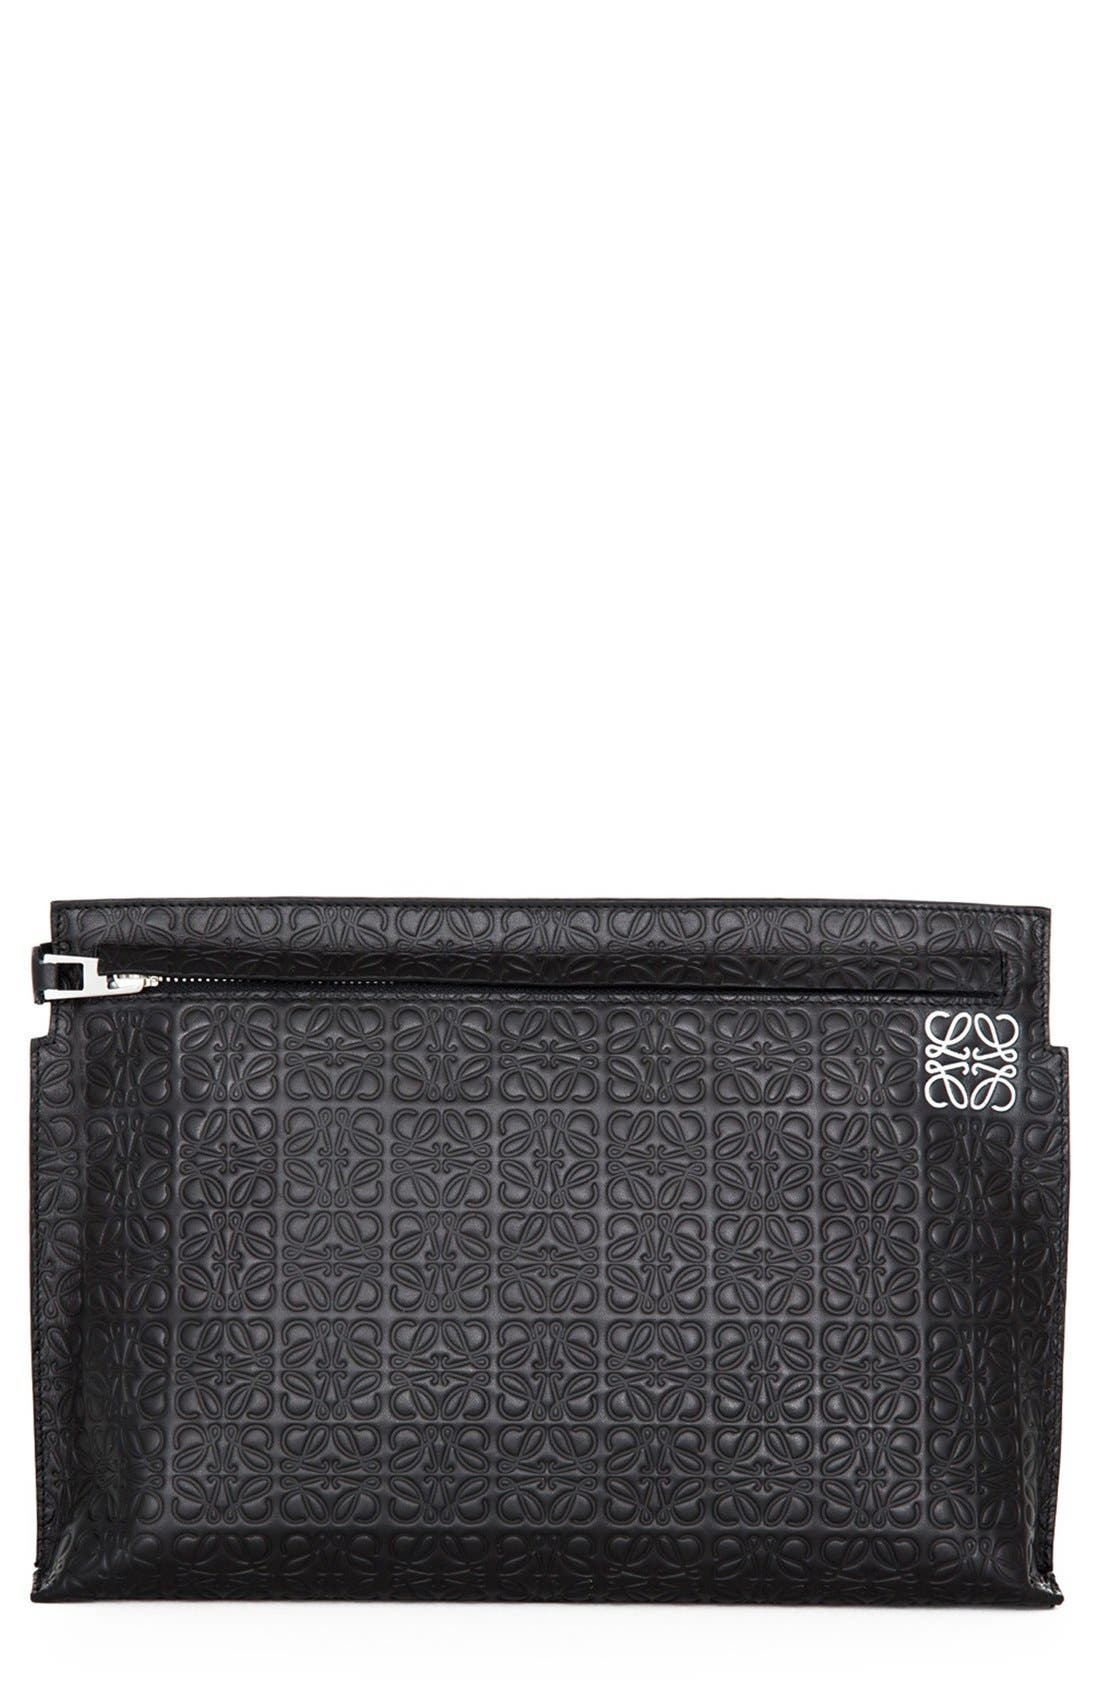 LOEWE Large Logo Embossed Calfskin Leather Pouch, Main, color, 001